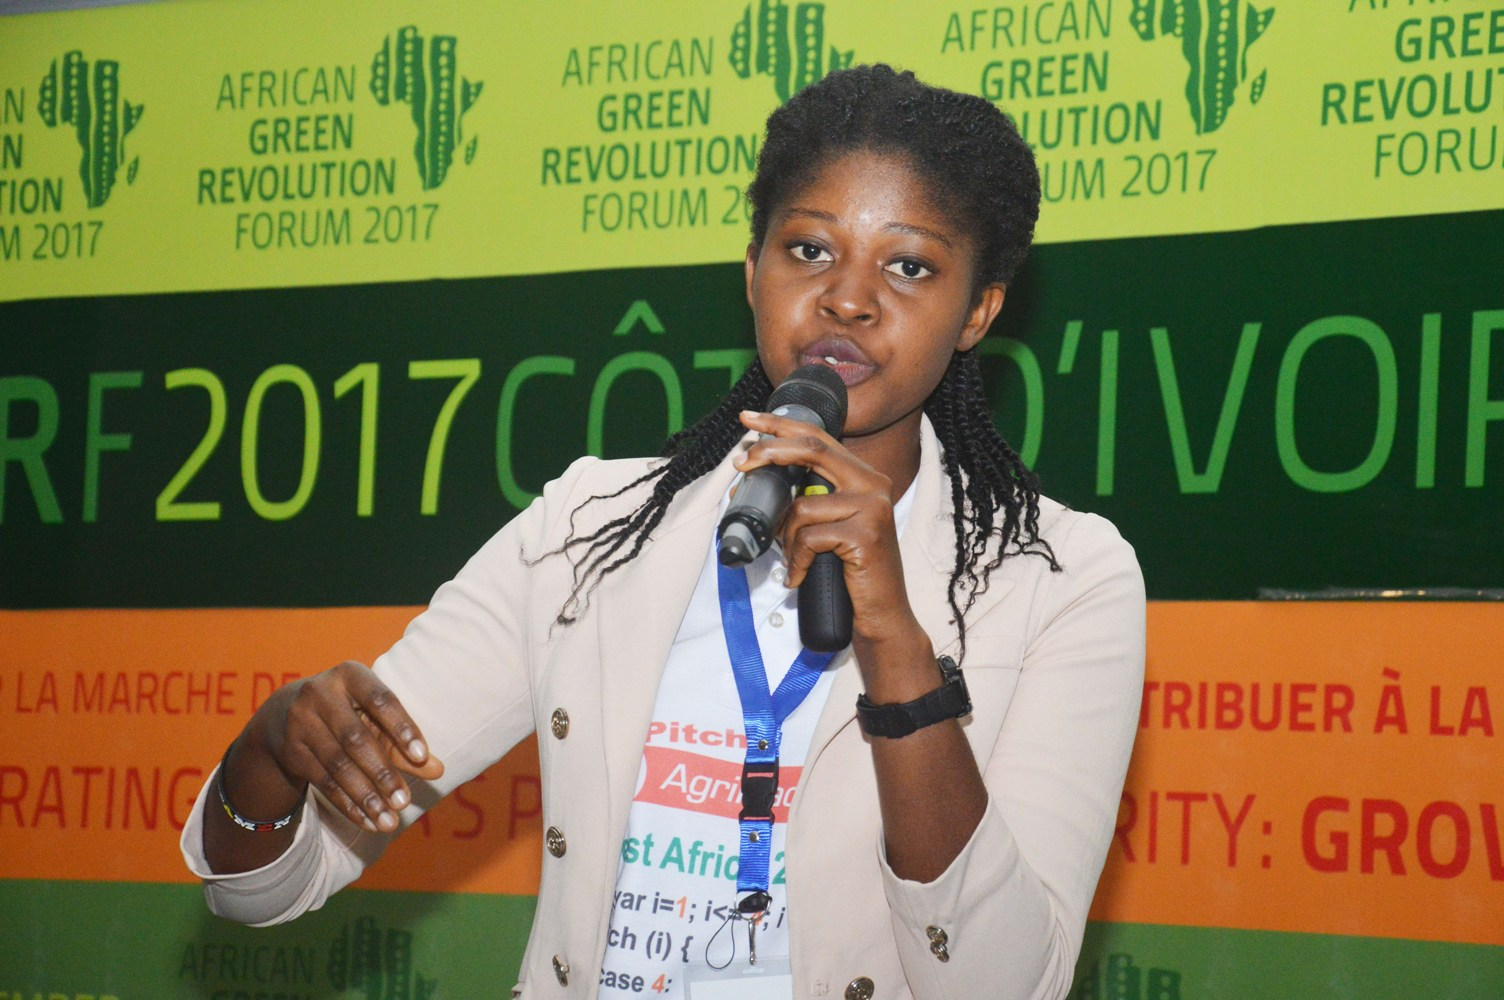 New opportunities for Pitch AgriHack 2017